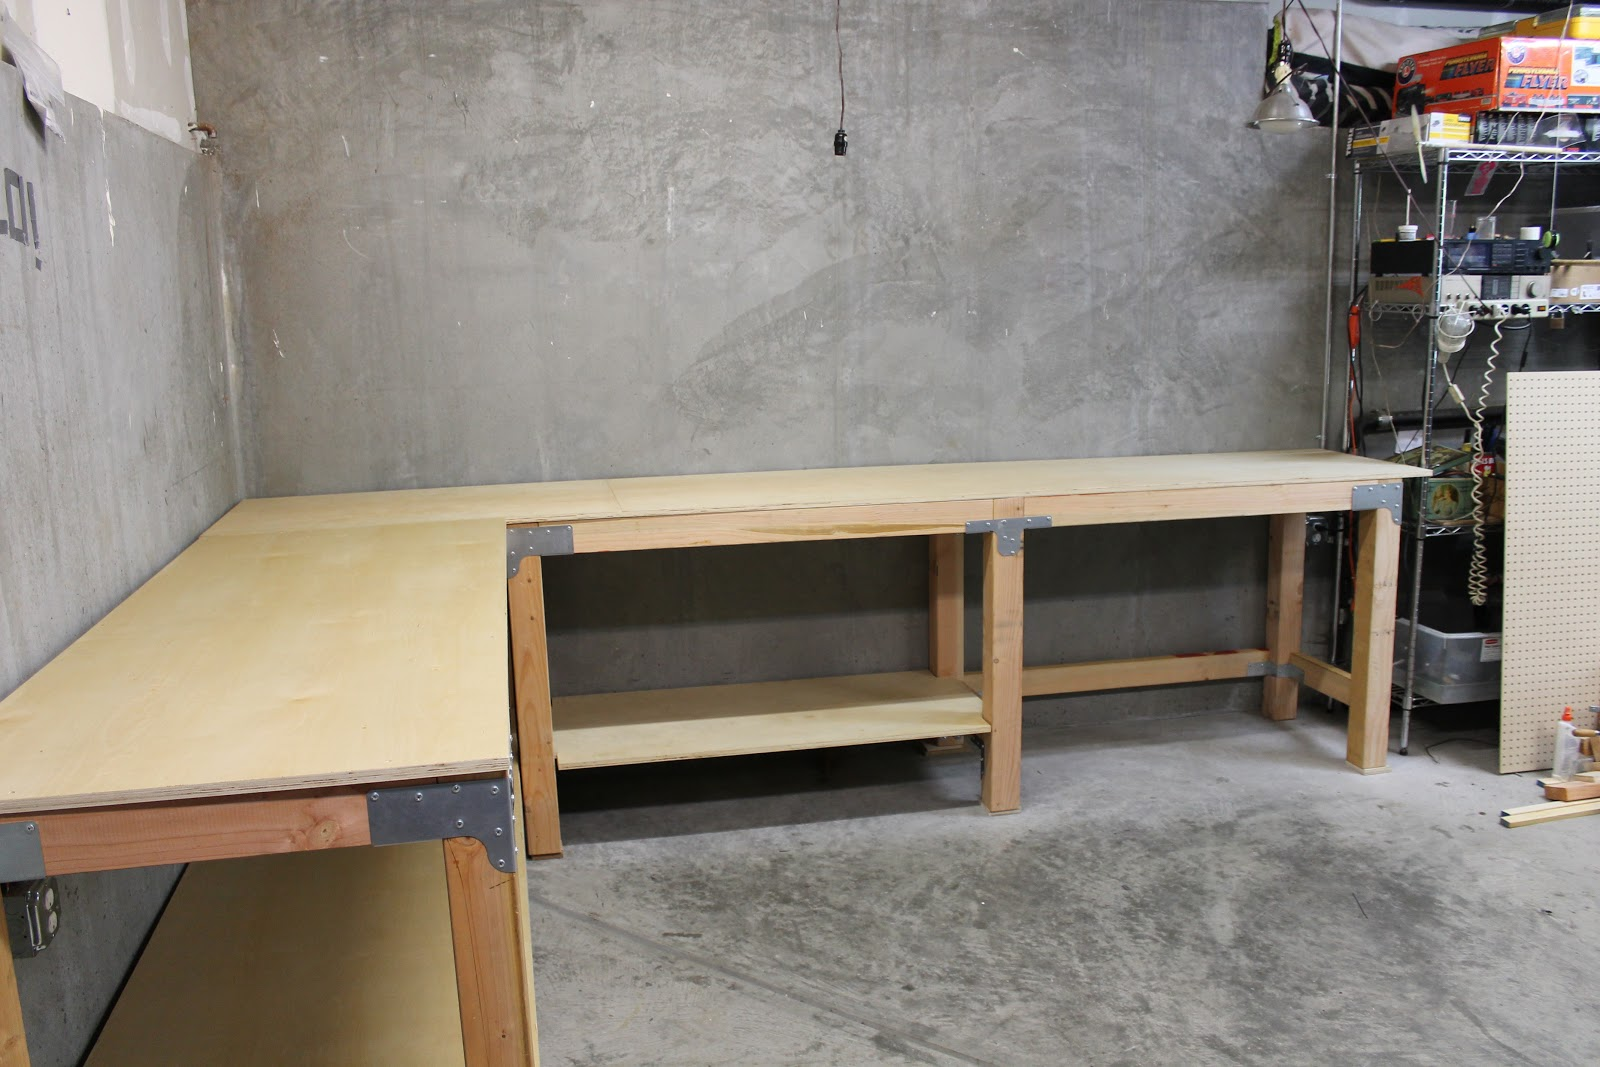 Ordinaire Finished: The Garage Work Table